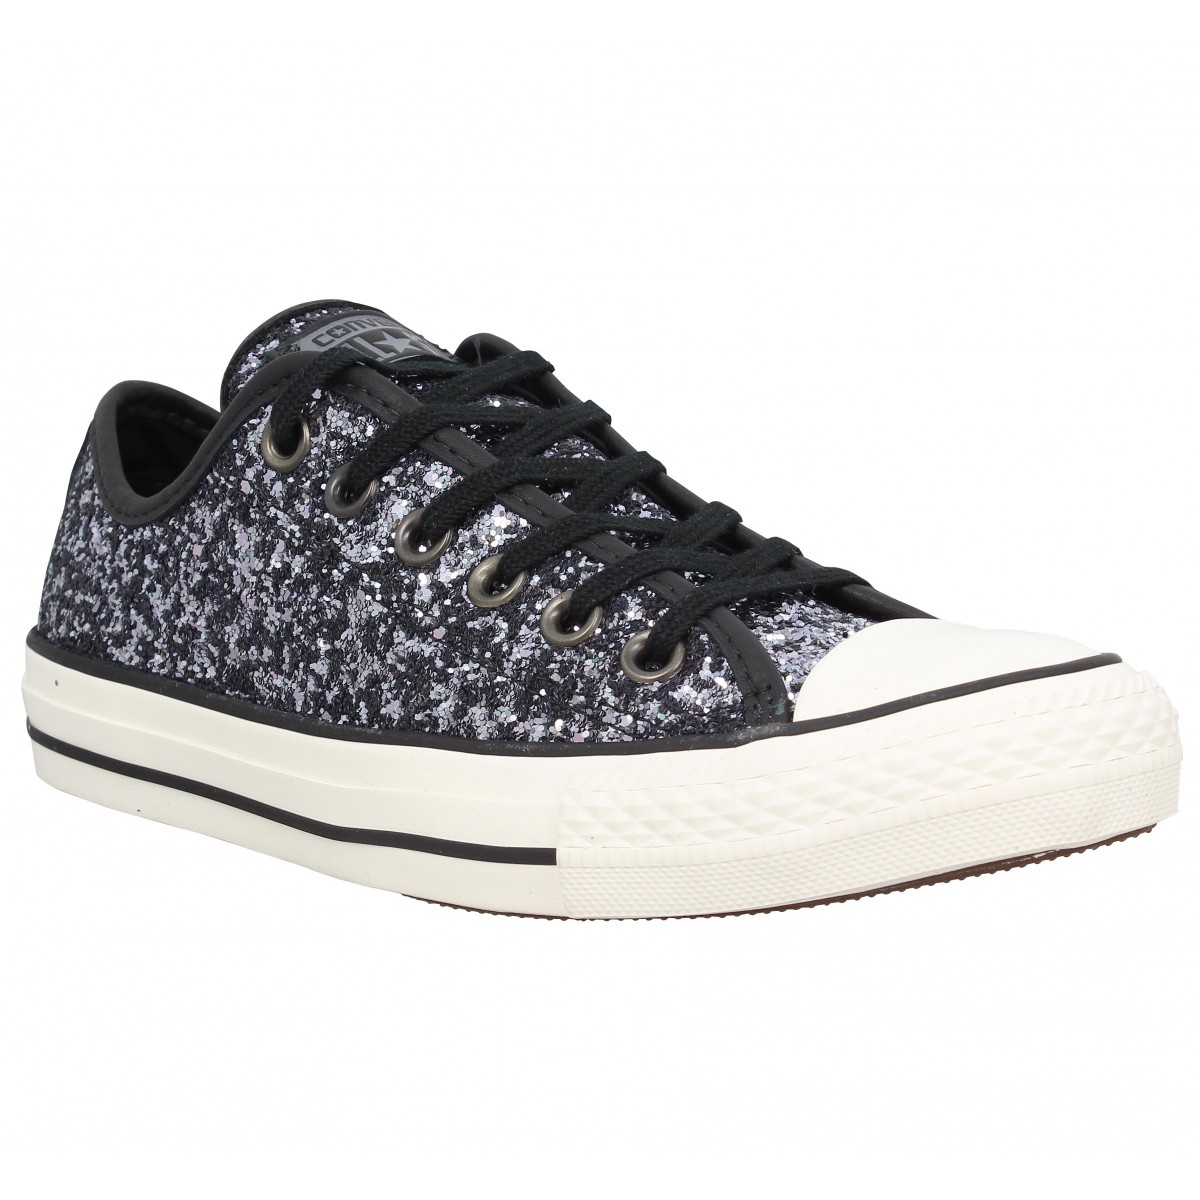 Baskets CONVERSE Chuck Taylor All Star paillettes Femme Gun Metal